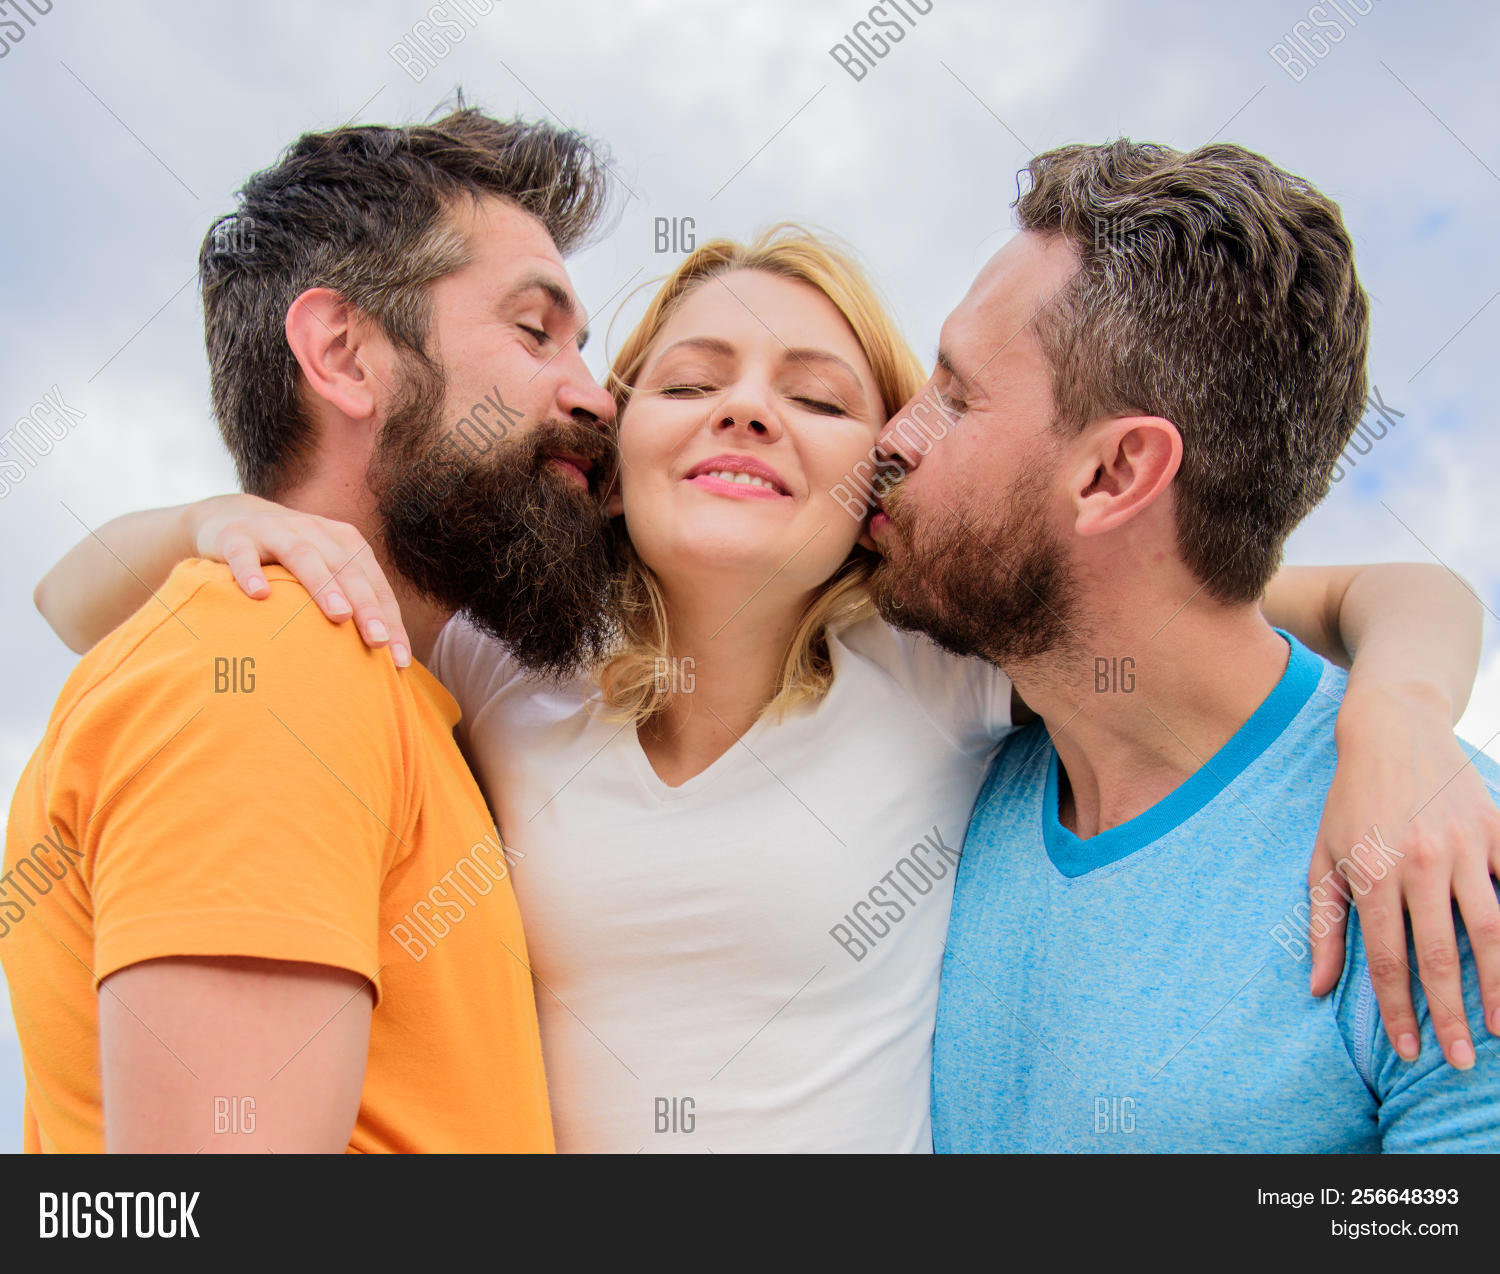 Two guys dating the same girl